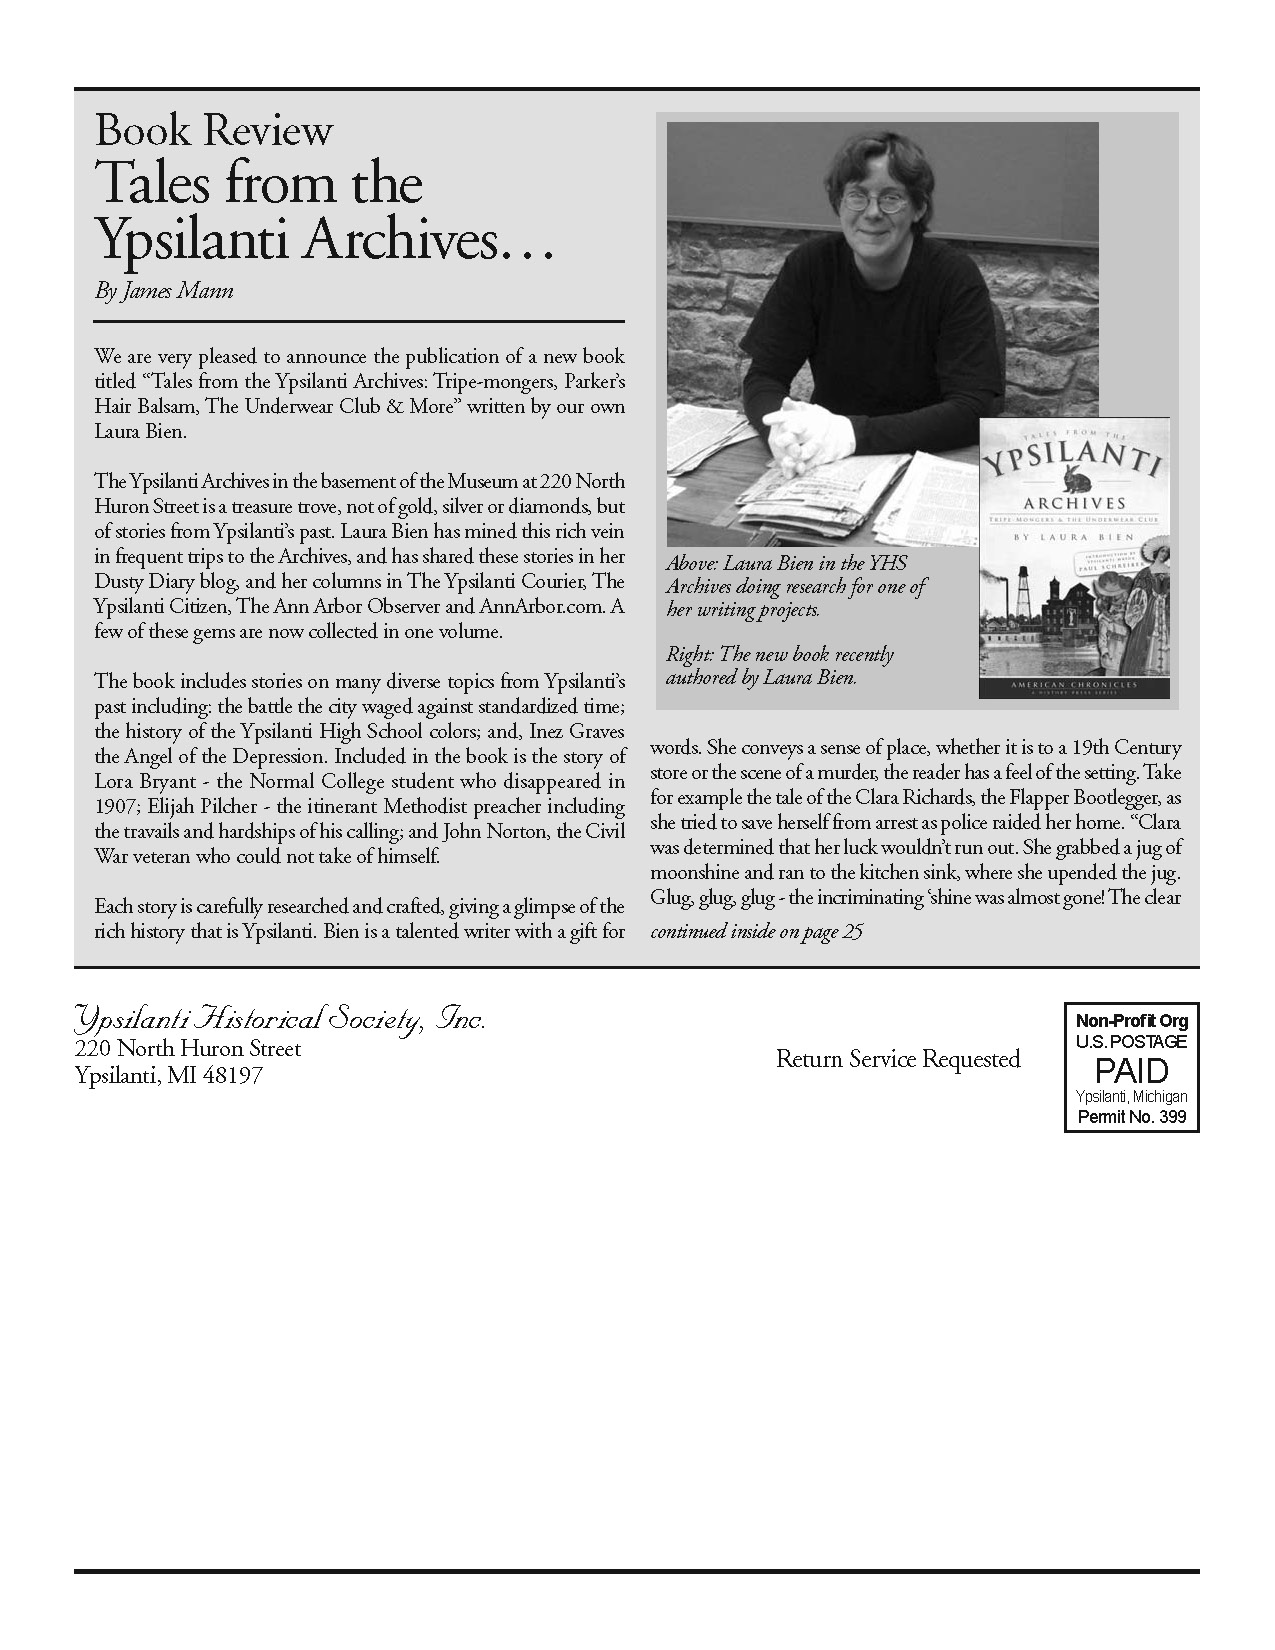 Book Review: Tales from the Ypsilanti Archives image